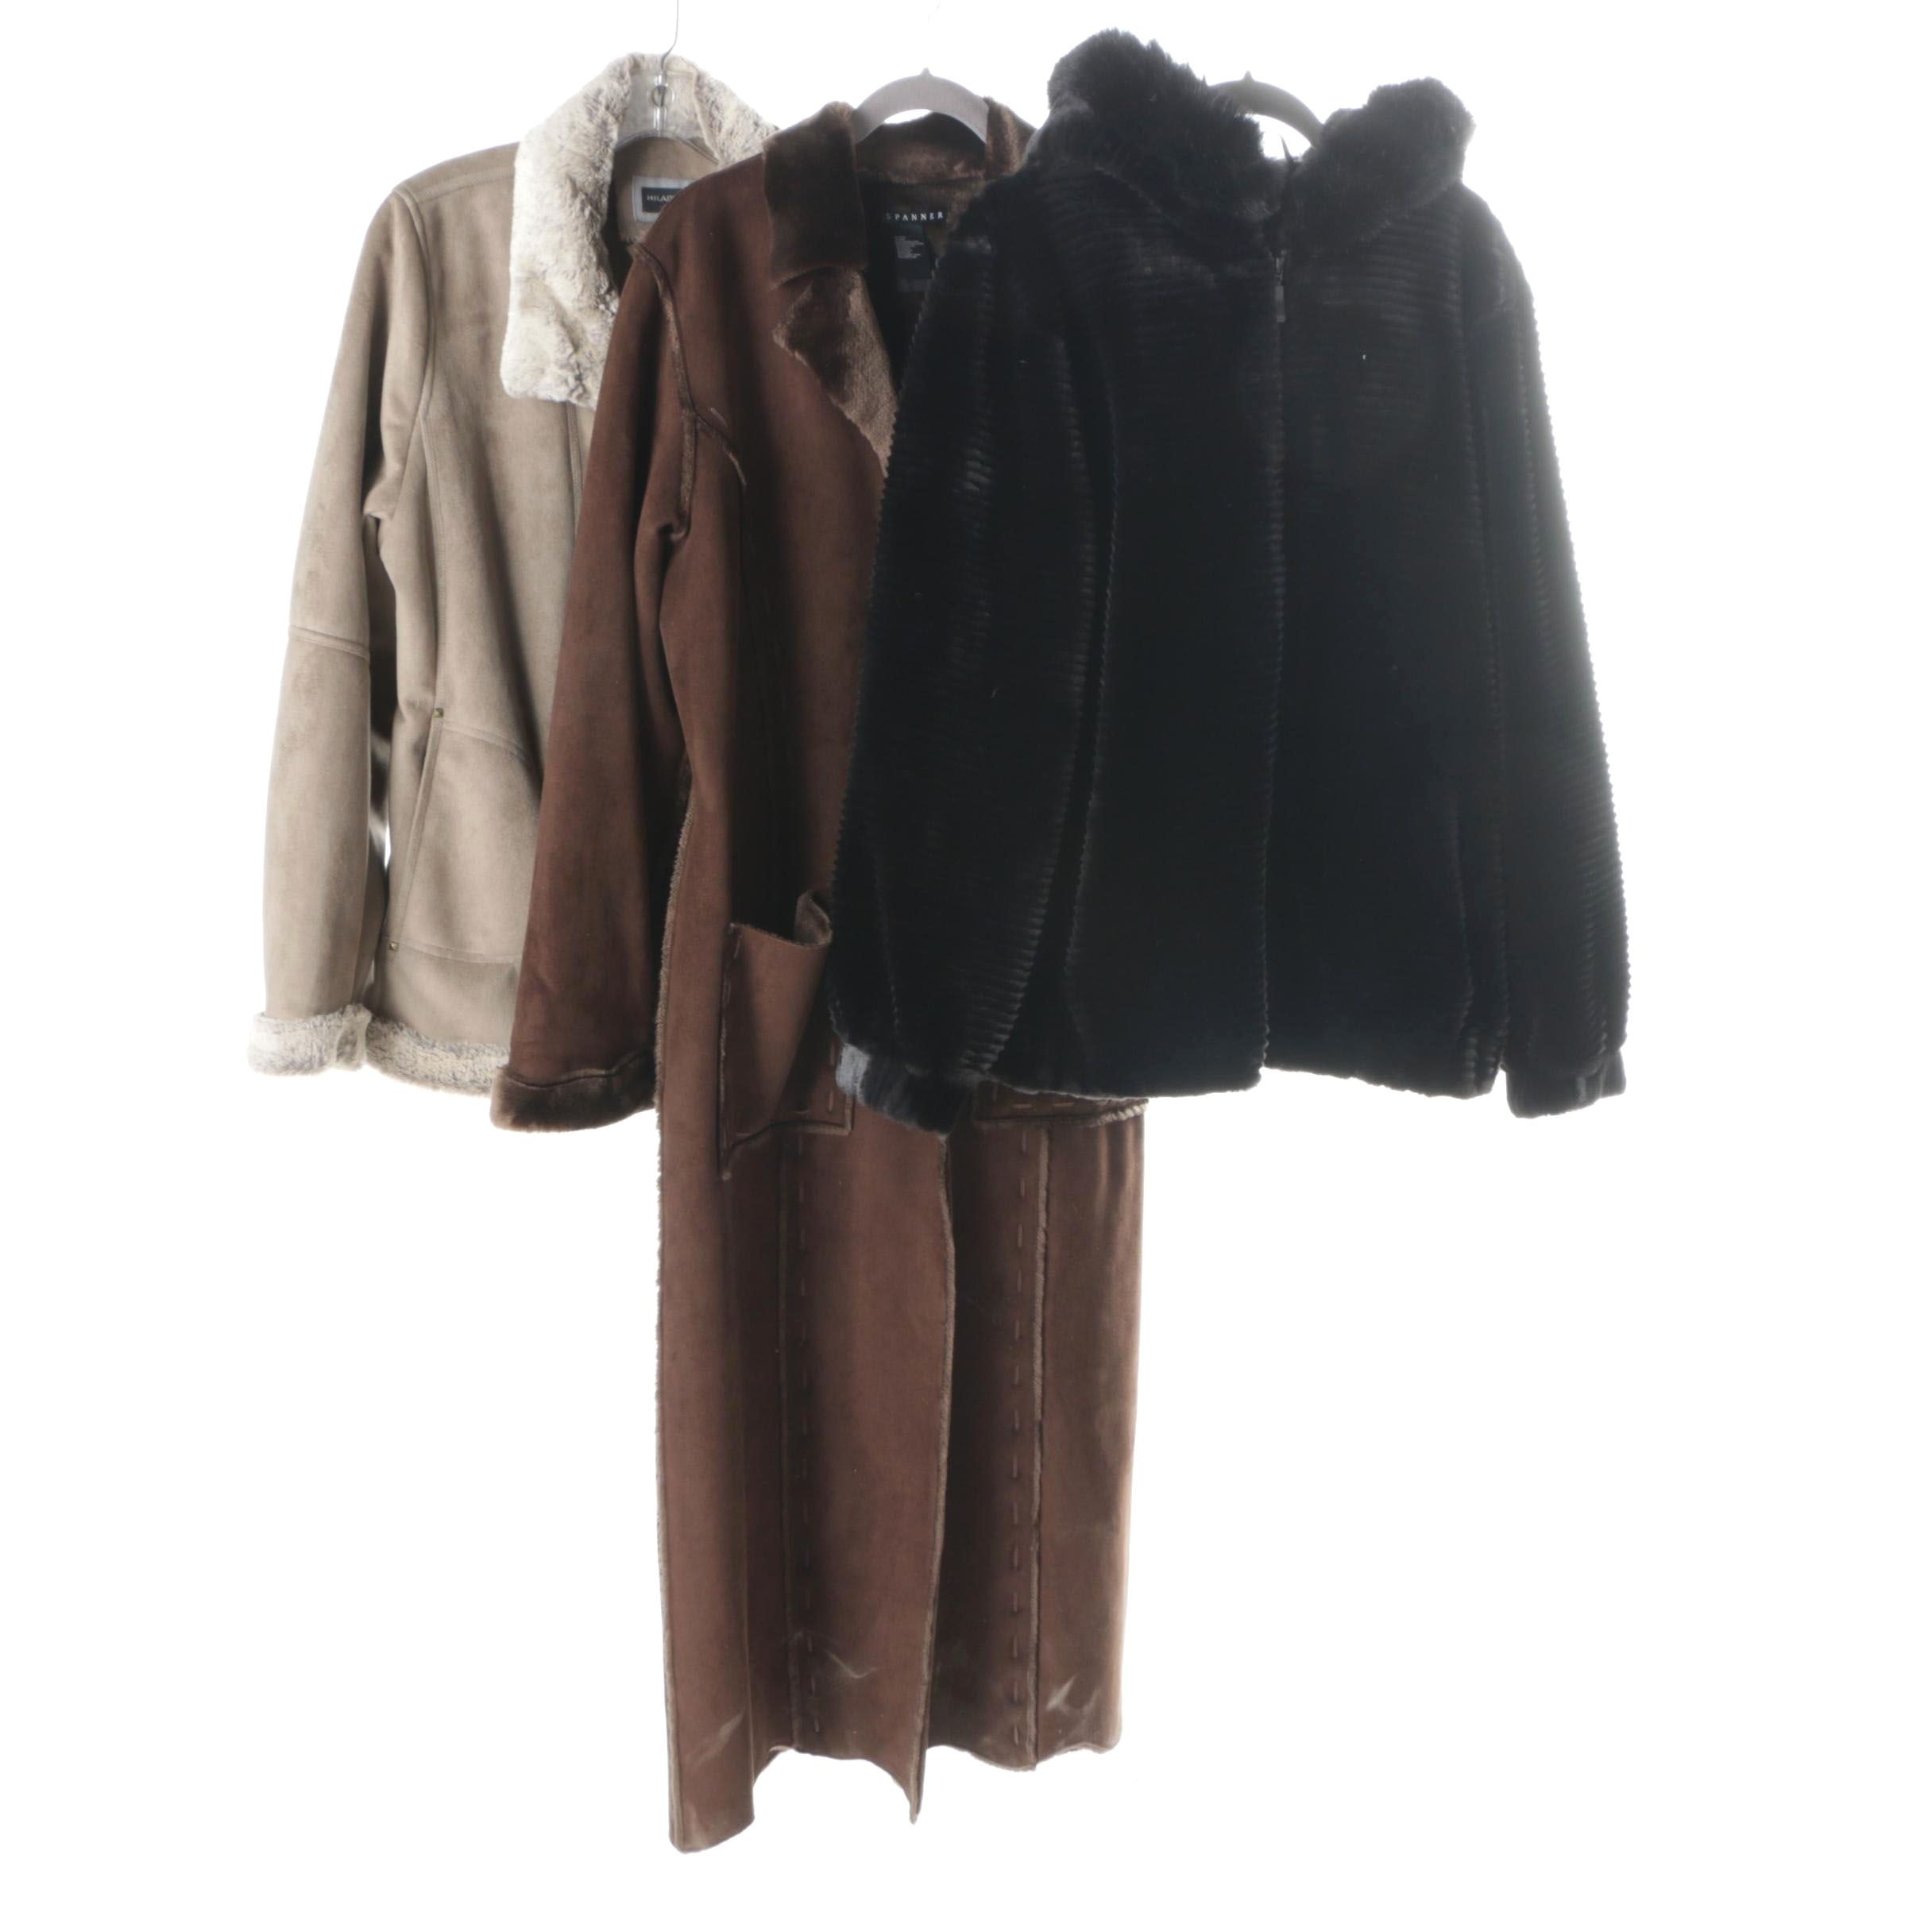 Women's Coats Including Gallery and Hilary Radley